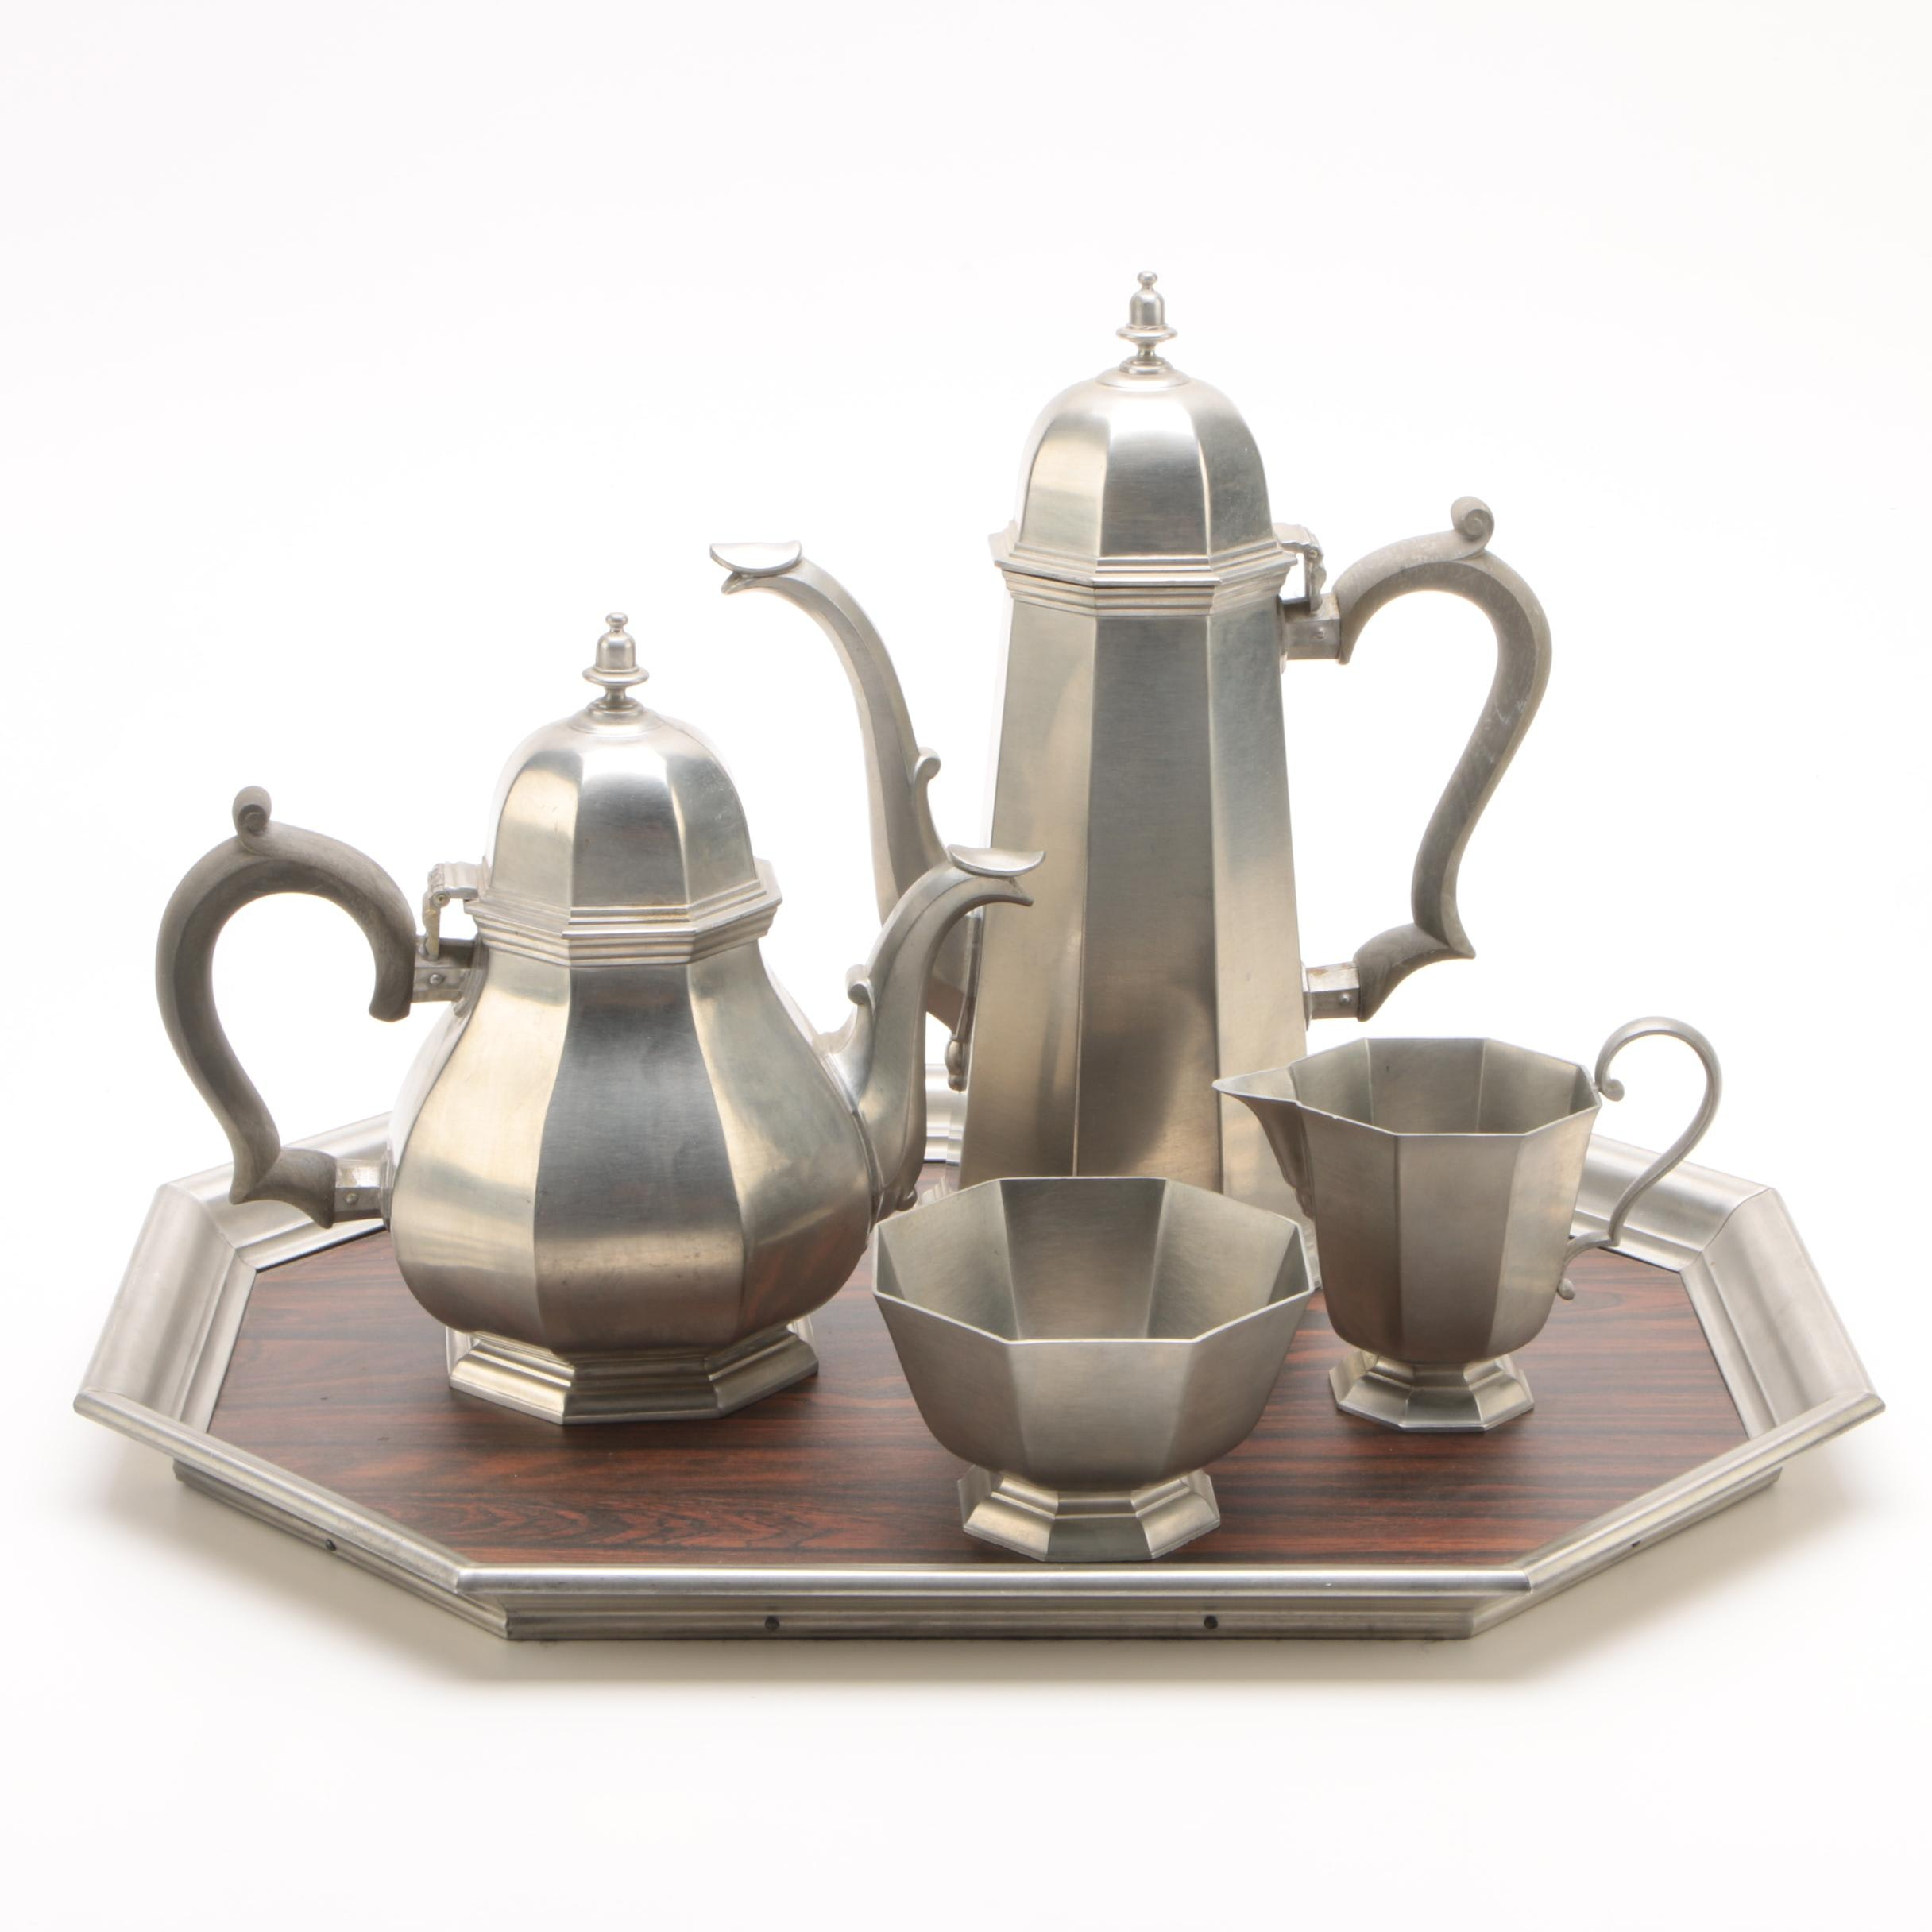 """Vintage Gorham Pewter """"Octette"""" Tea and Coffee Service Set with Tray"""